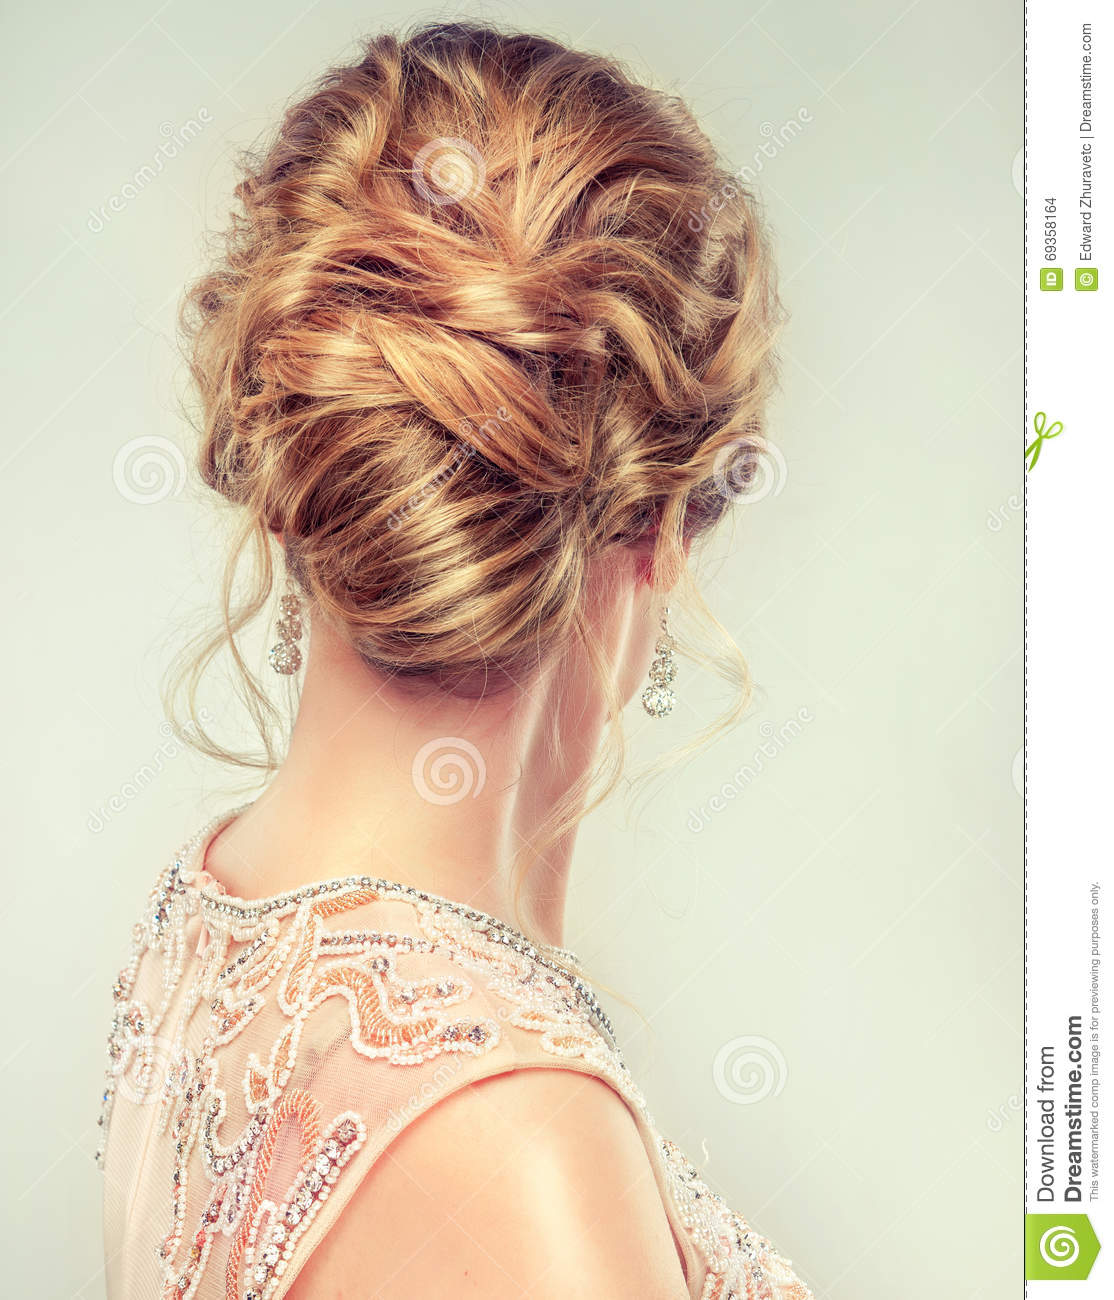 Close Up Image Of Wedding And Evening Hairstyle Stock Photo Image